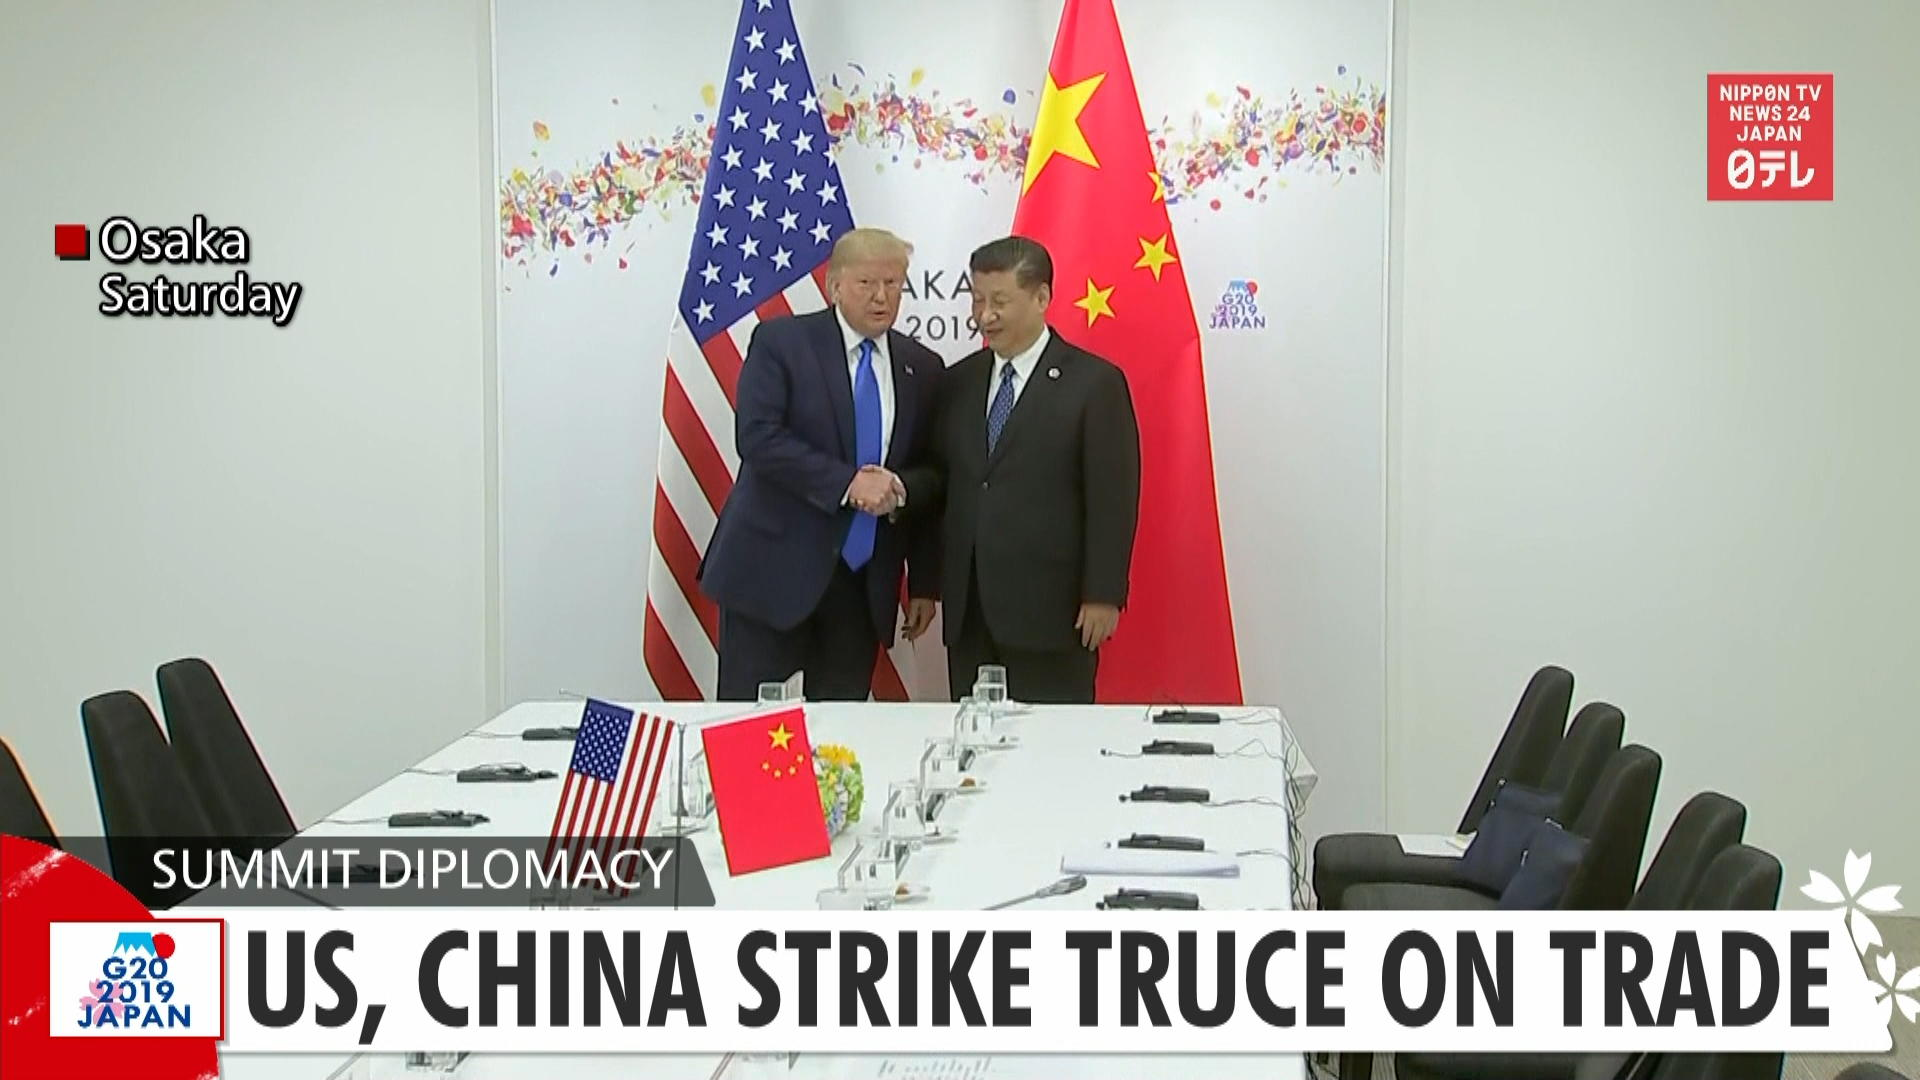 G20: US, China strike truce on trade